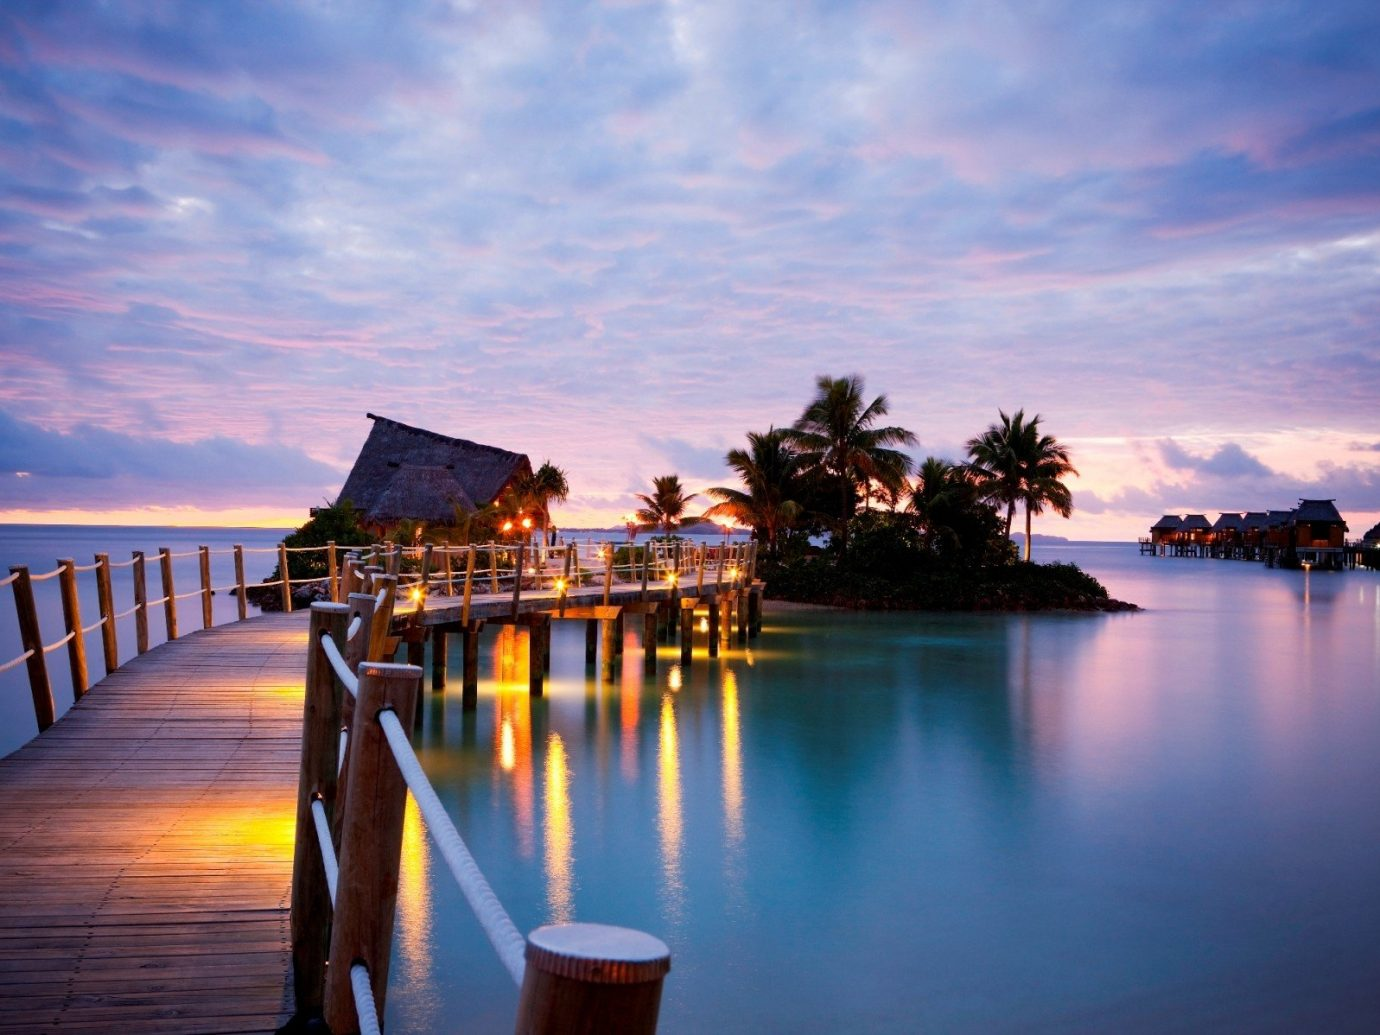 All-Inclusive Resorts Boutique Hotels Hotels Romance water sky outdoor scene Boat body of water Sea reflection horizon evening dusk pier morning Sunset cloud lighting calm sunrise Ocean tourist attraction dawn River tourism vacation tropics leisure landscape computer wallpaper Resort distance several